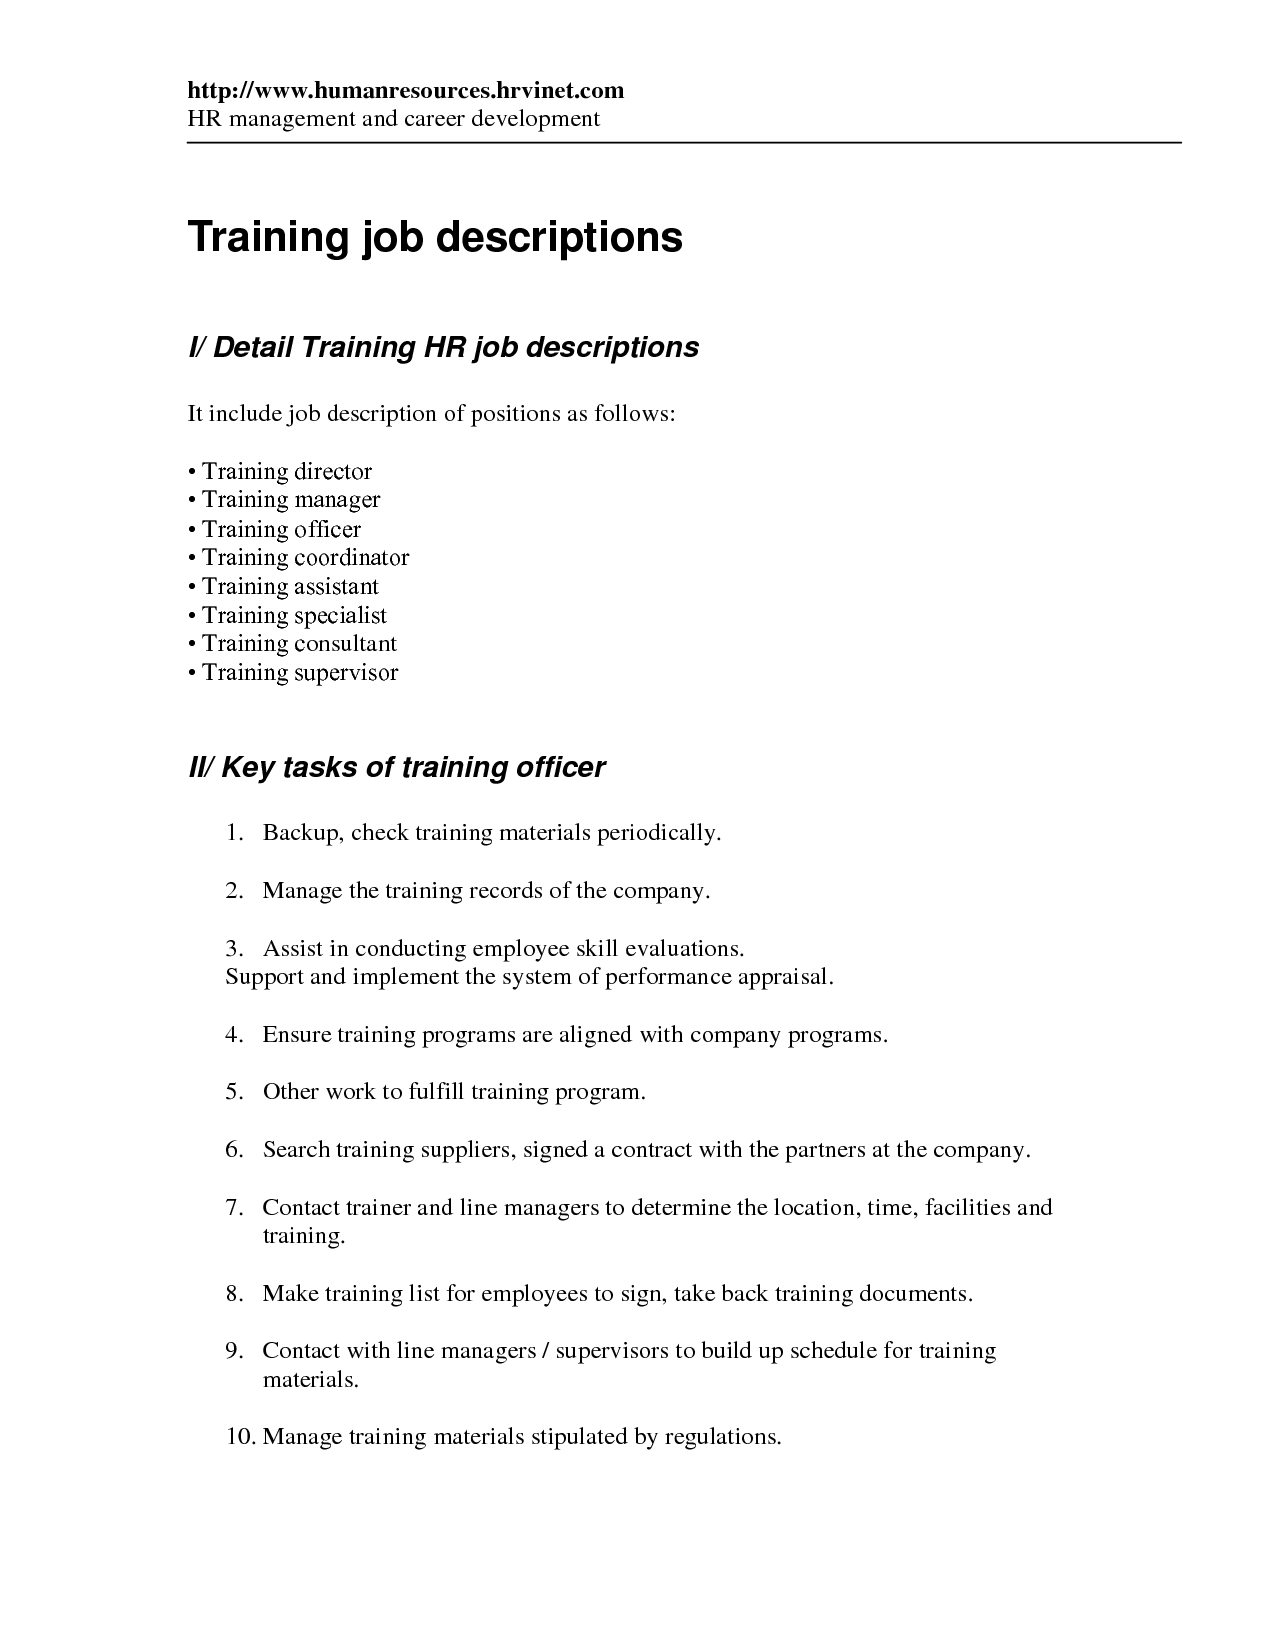 training job description job description forms training job description job description formstraining jobproject management